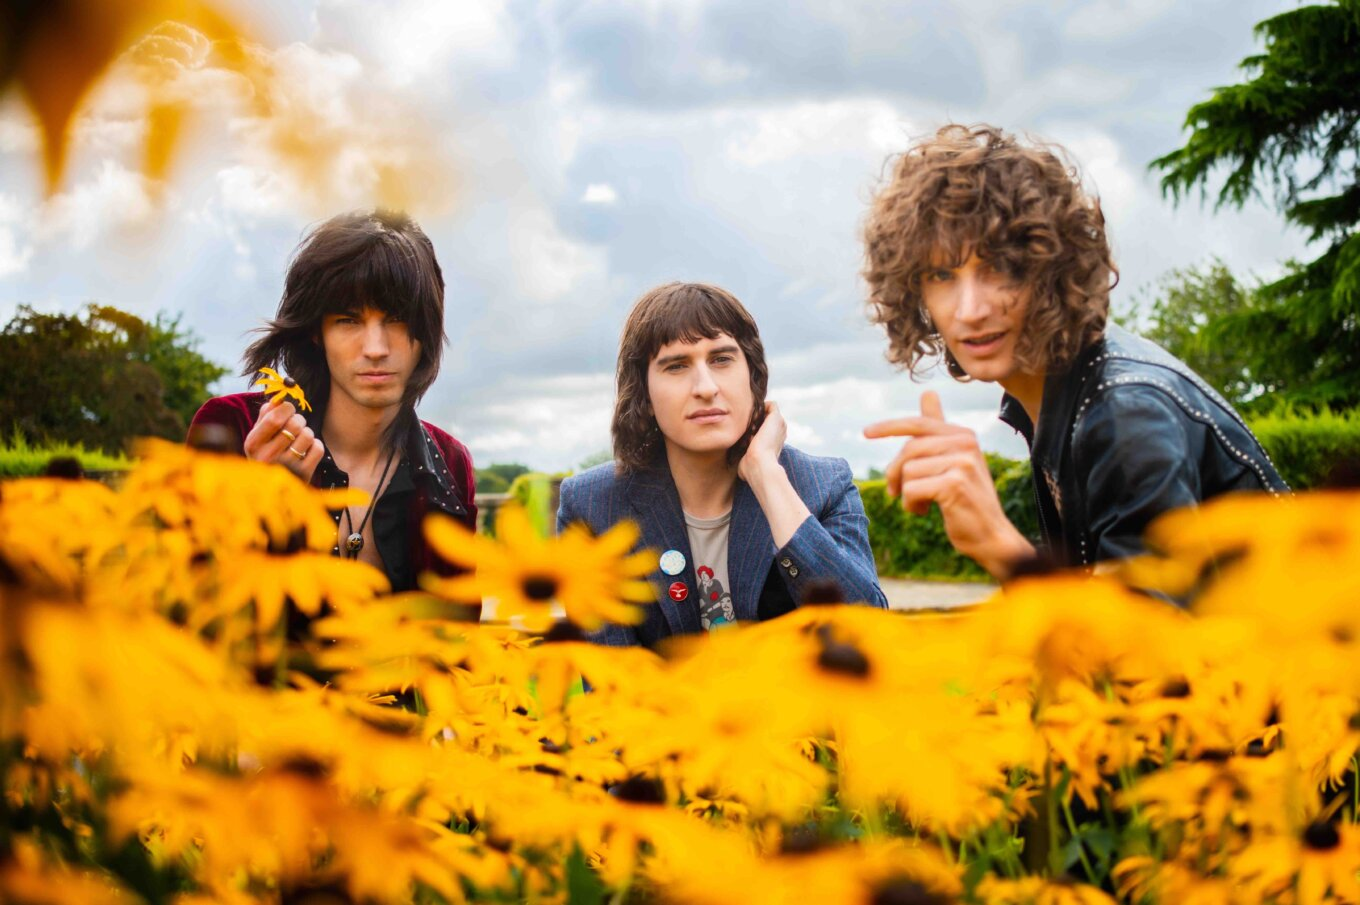 Temples band sunflowers